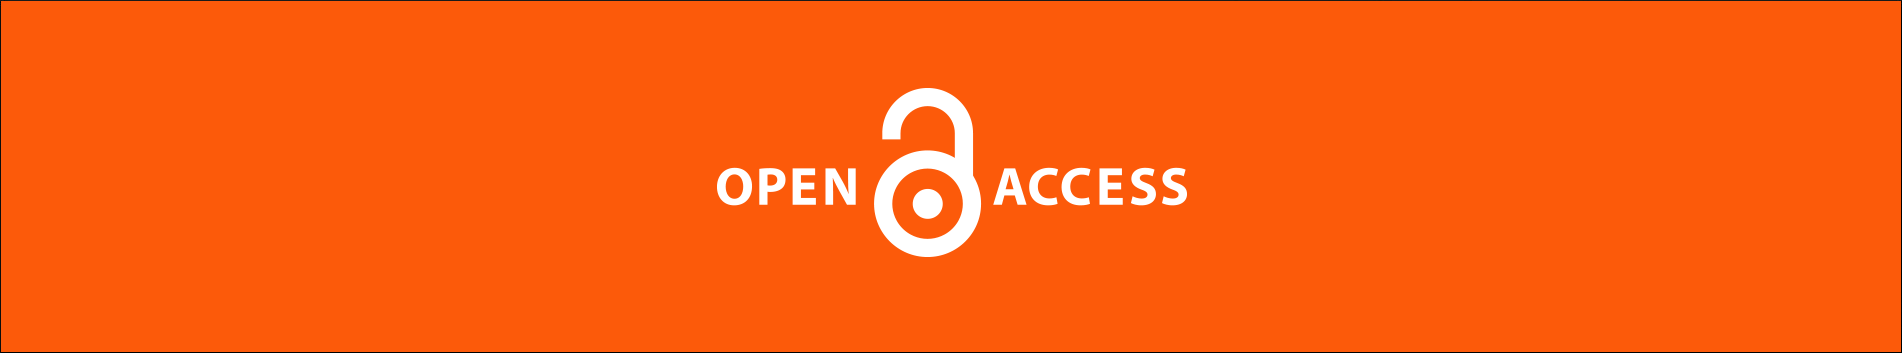 Judging the Safety of an Open Access Journal feature image